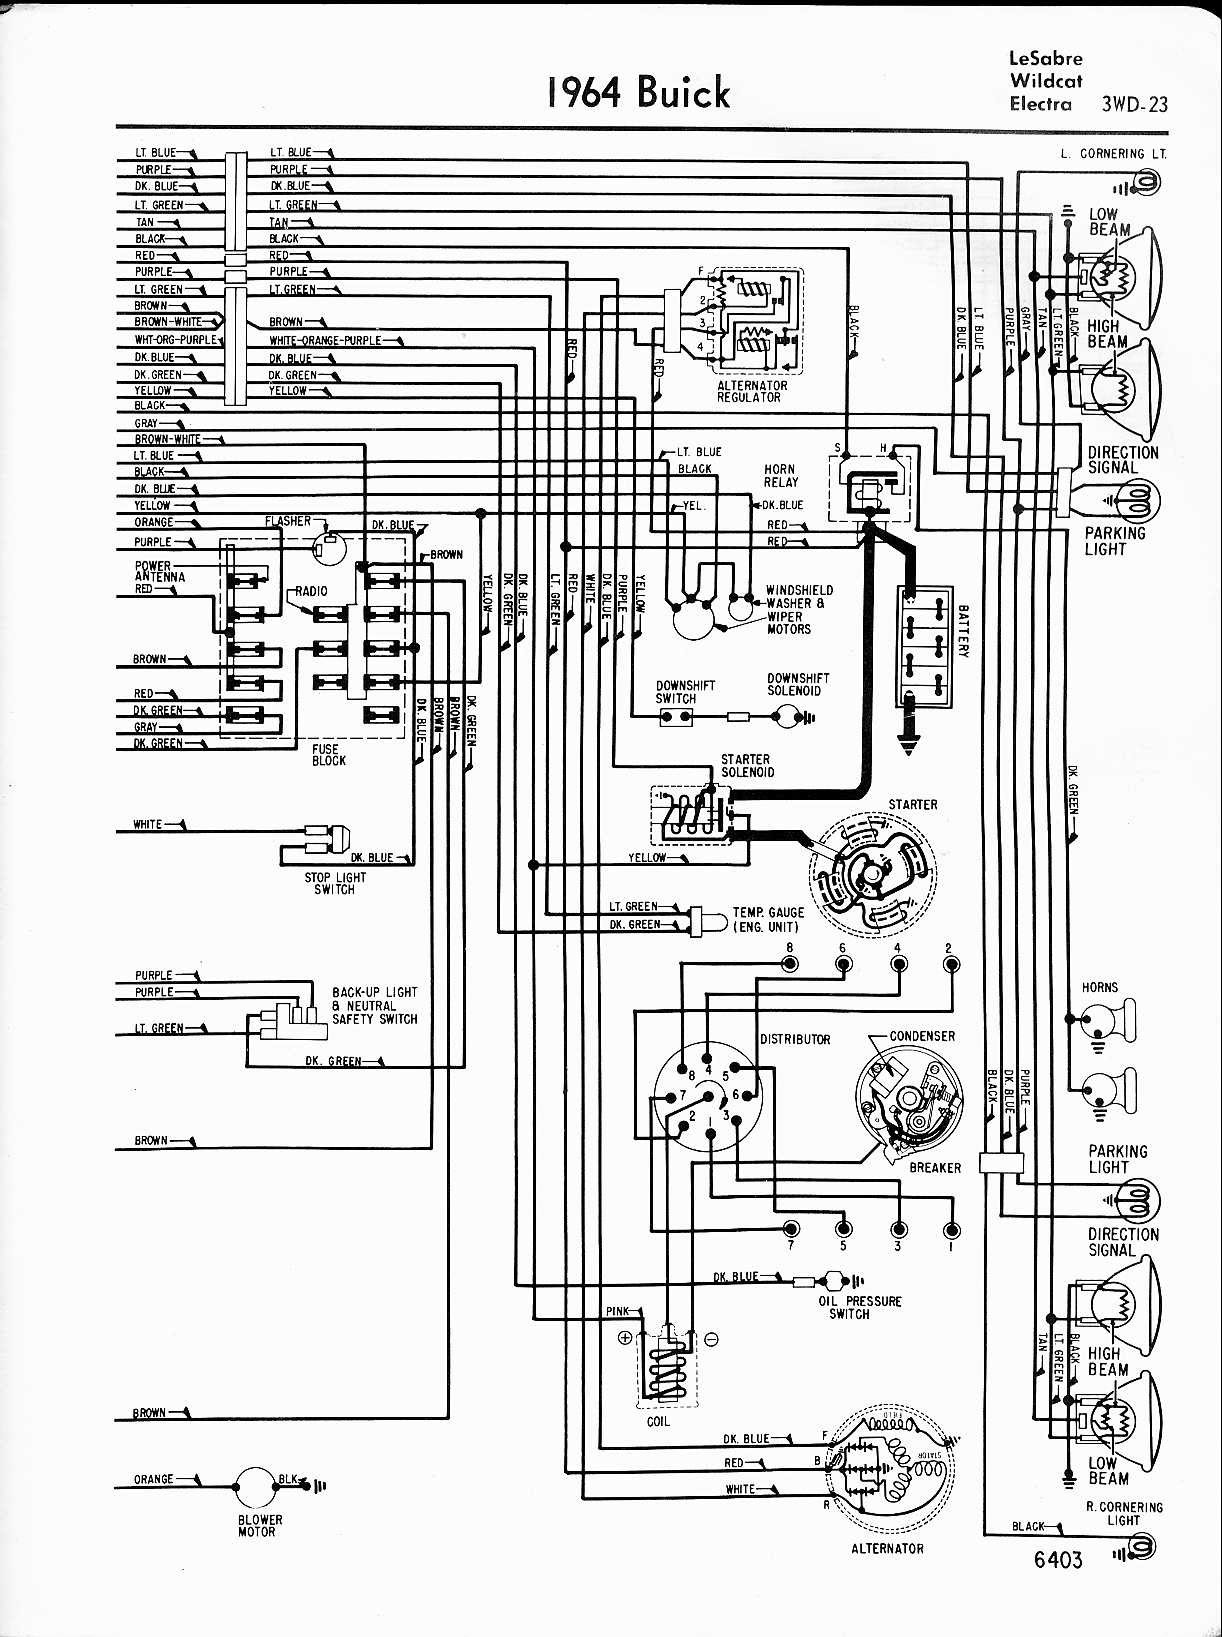 2008 Buick Lucerne Wiring Diagram